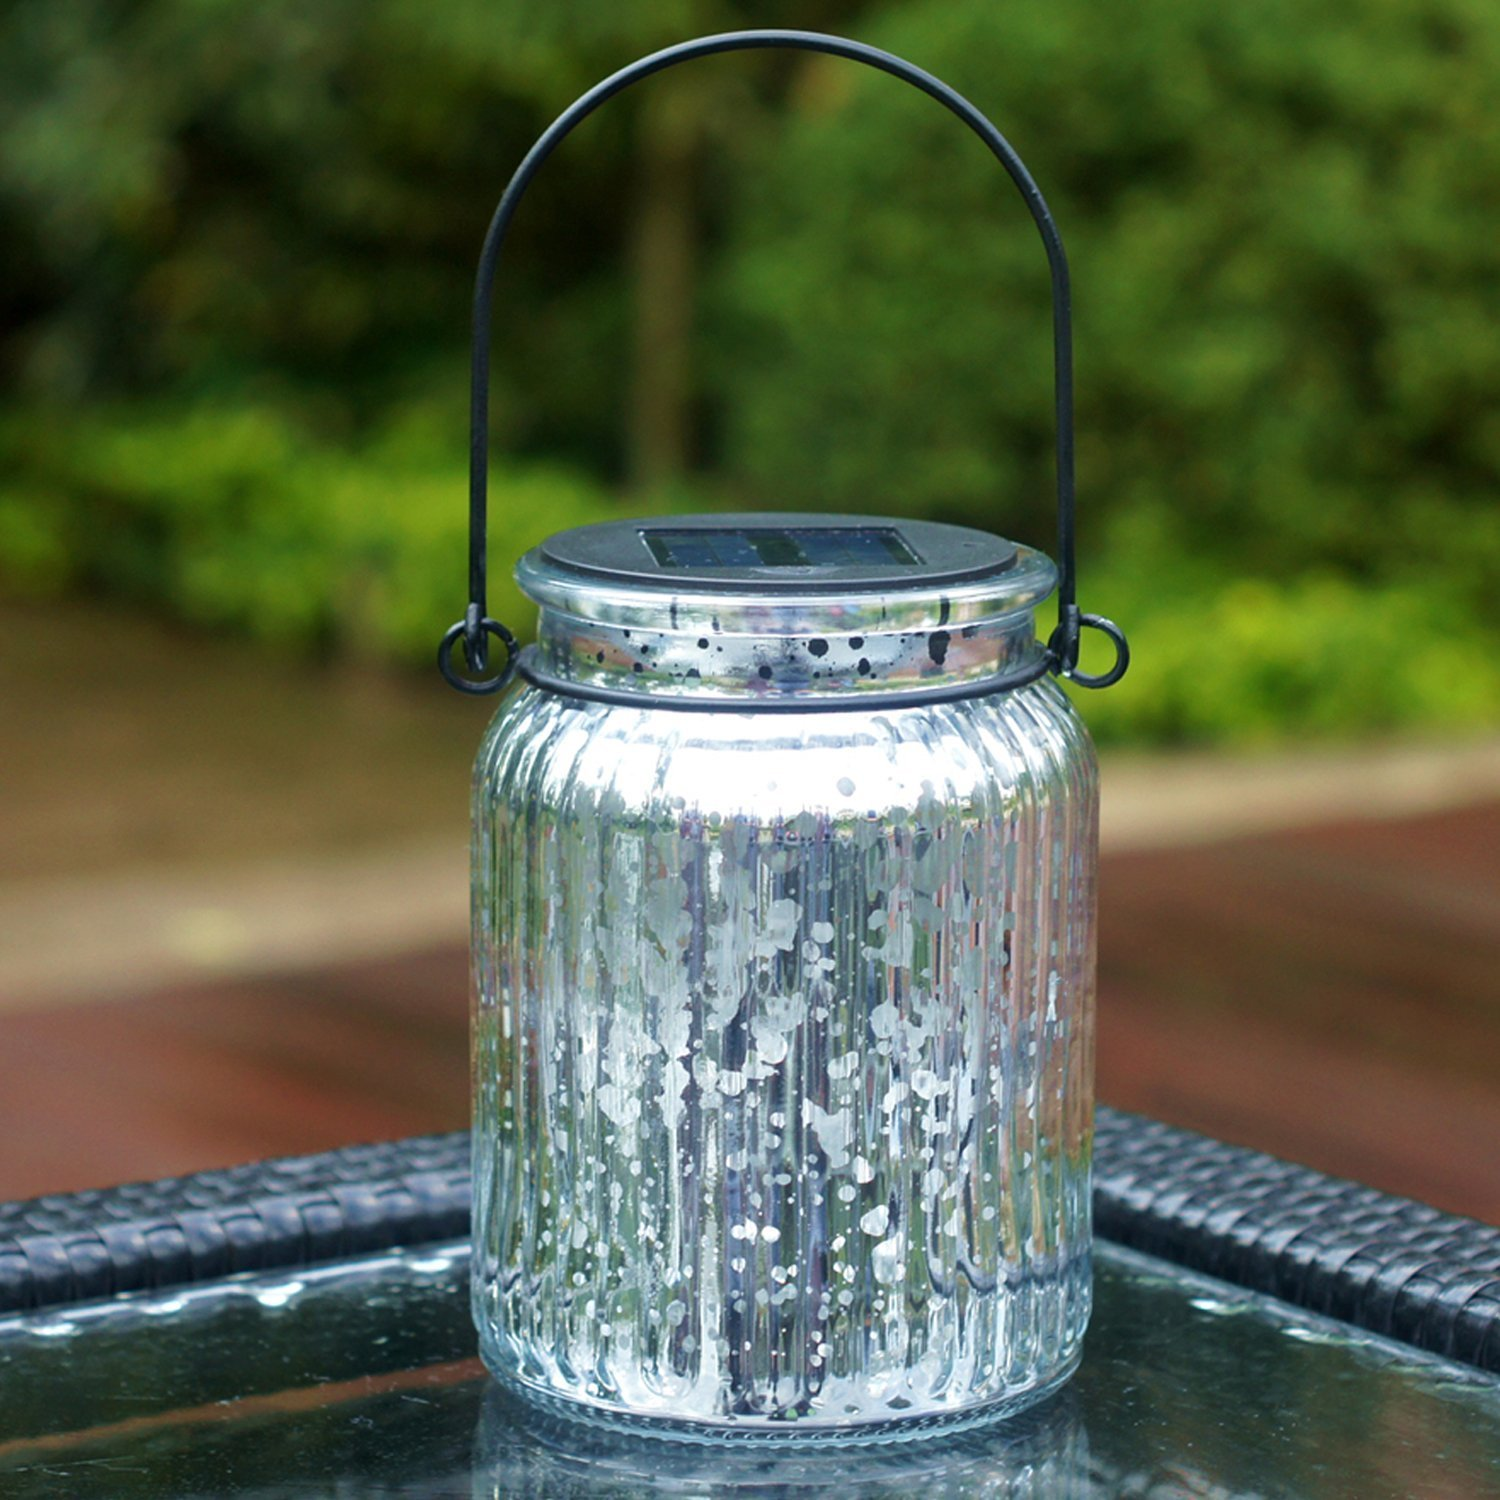 Solar Silver Mercury Glass Jars - 2 Pack Outdoor Table Lamps Mason Jar Solar Lights Indoor Outdoor for Patio Garden Lawn Wall Decor